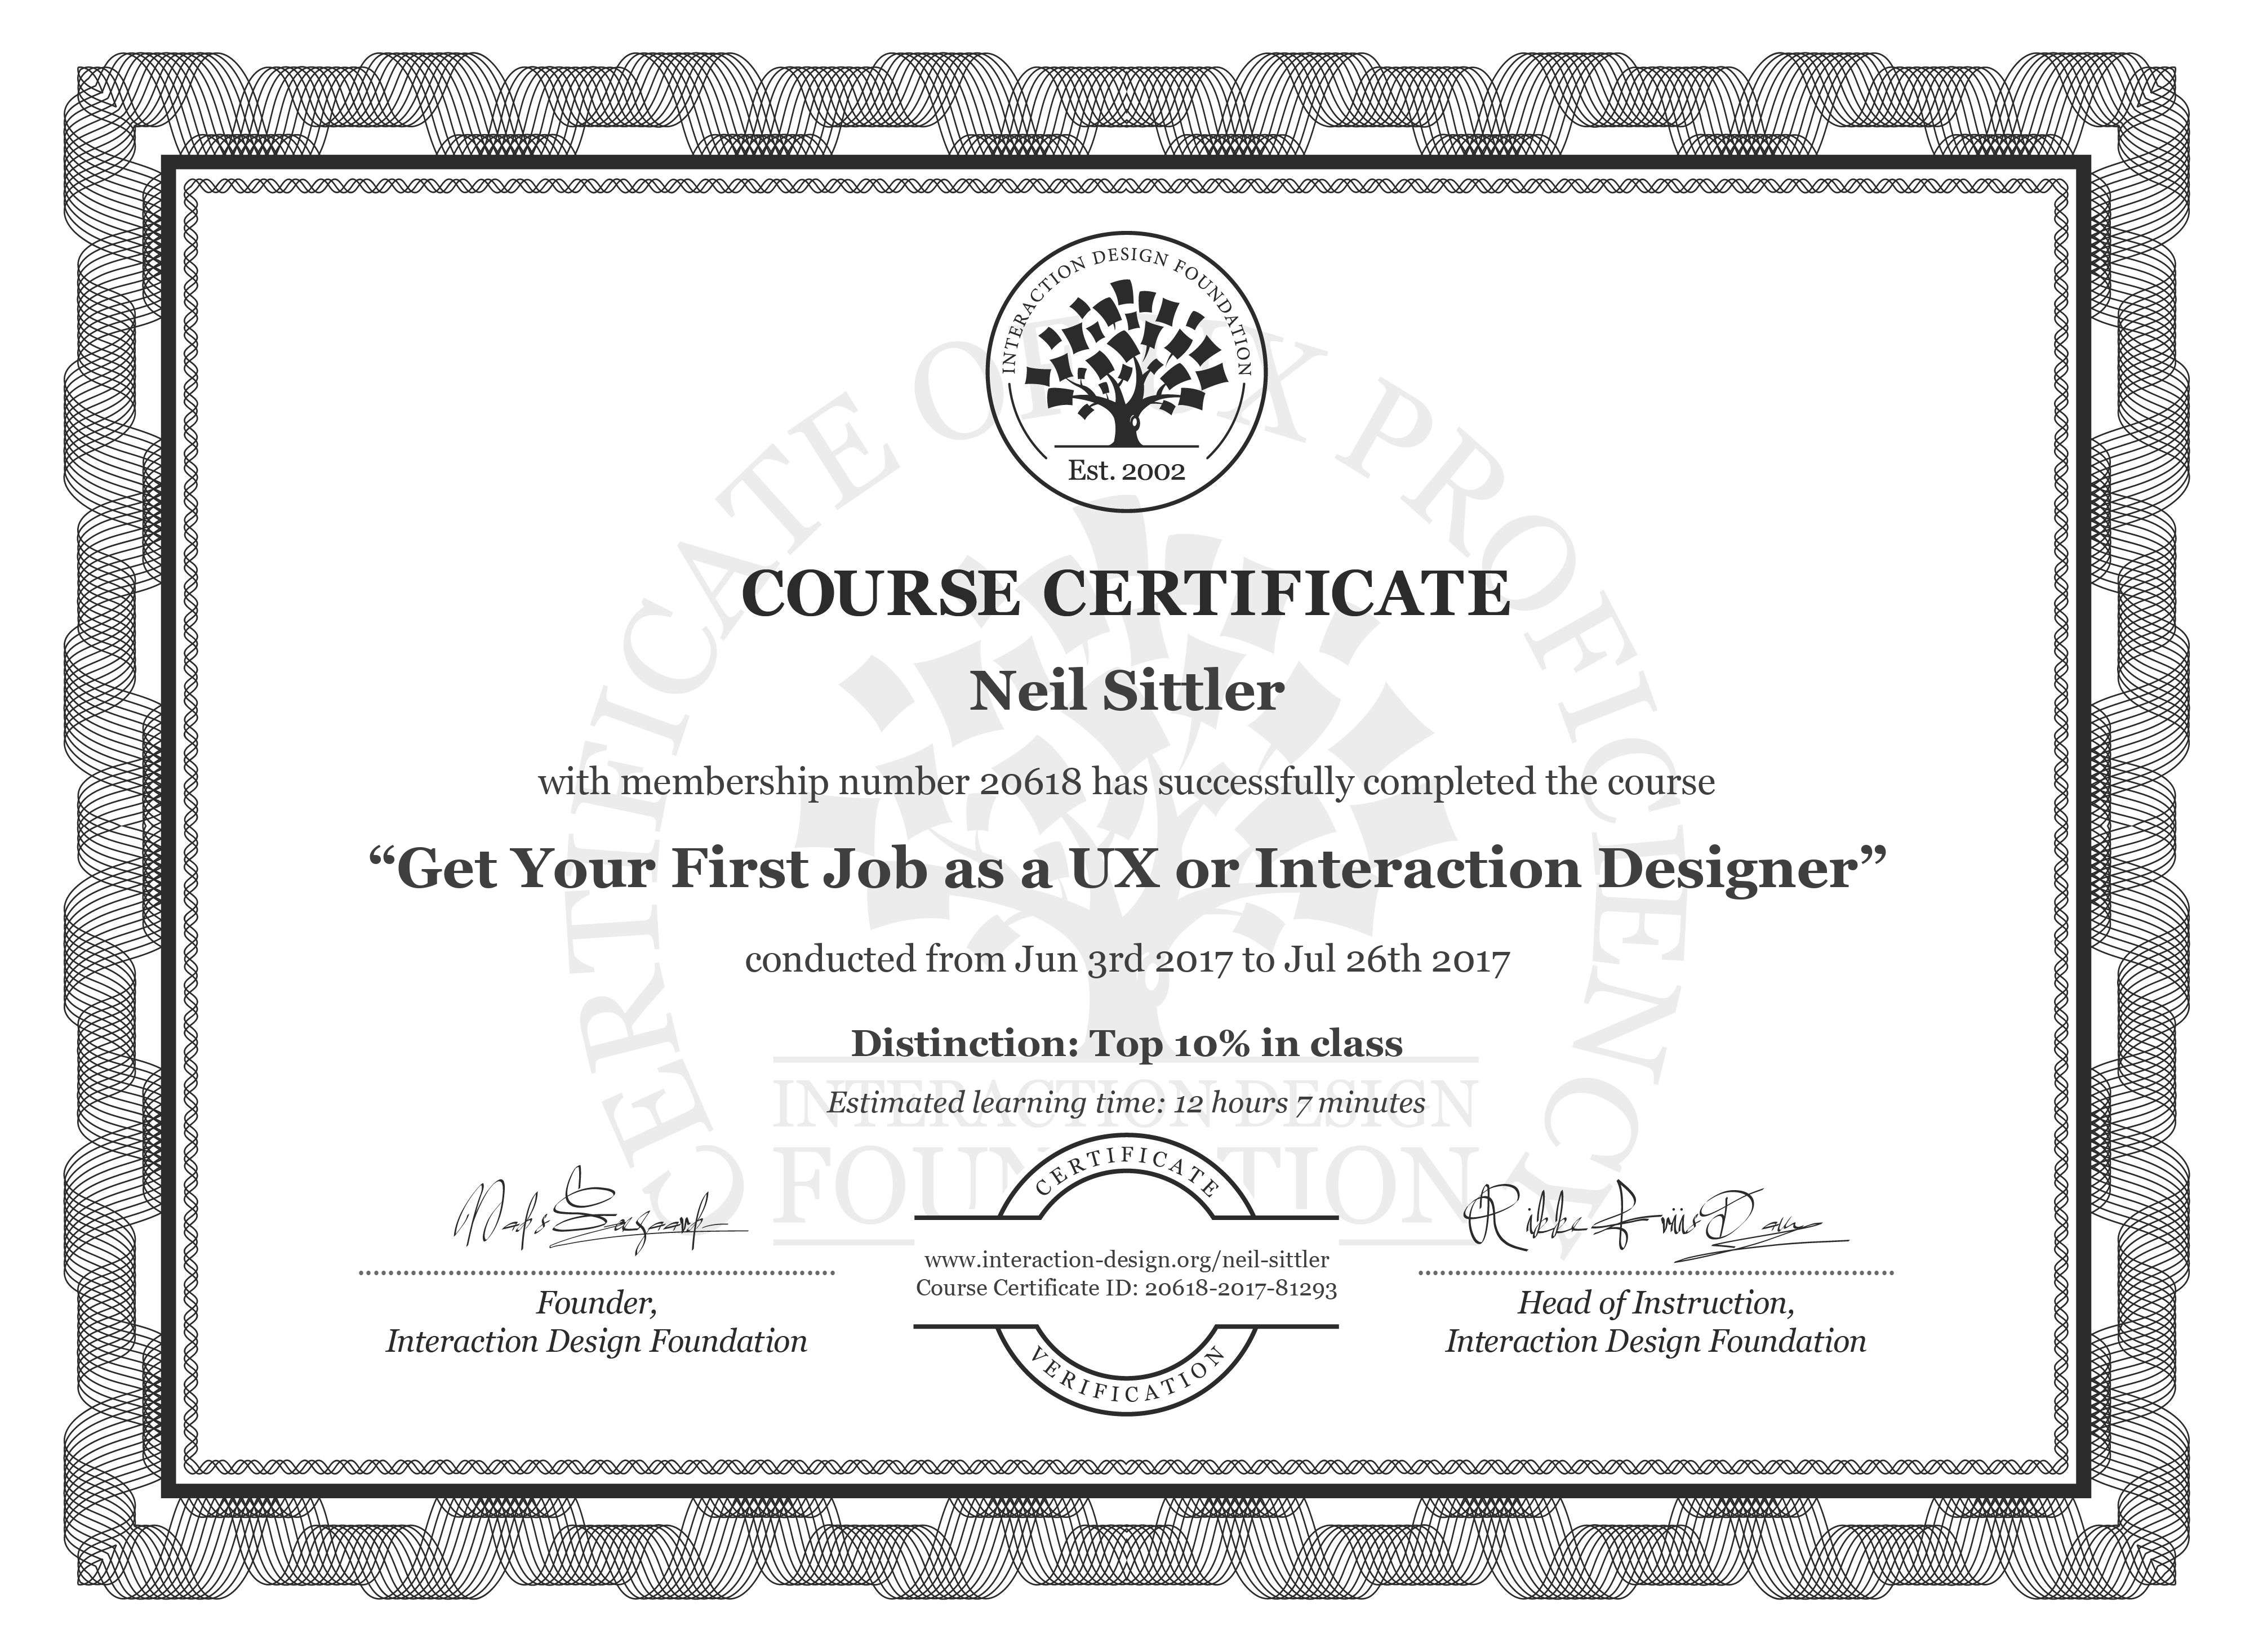 Neil Sittler: Course Certificate - Get Your First Job as a UX or Interaction Designer